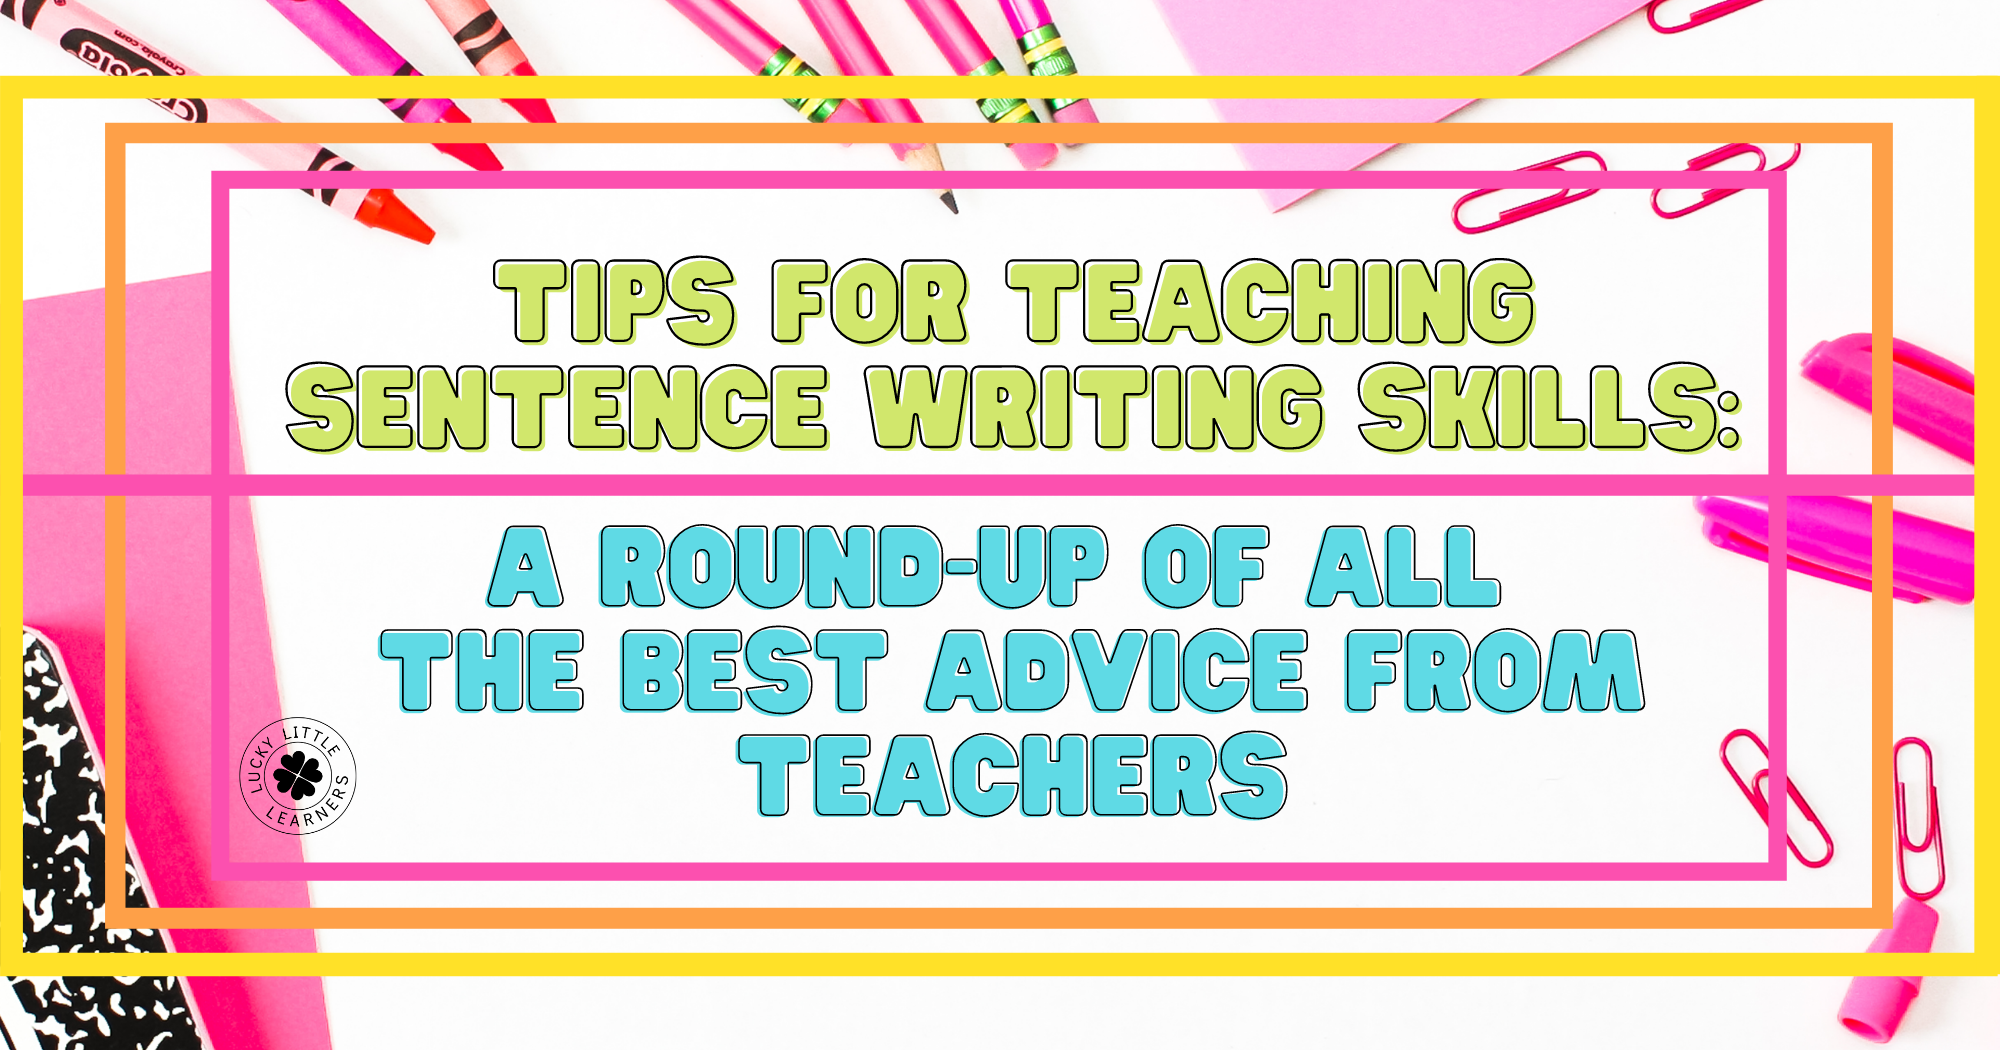 Tips for Teaching Sentence Writing Skills: A Round-Up of All the Best Advice From Teachers